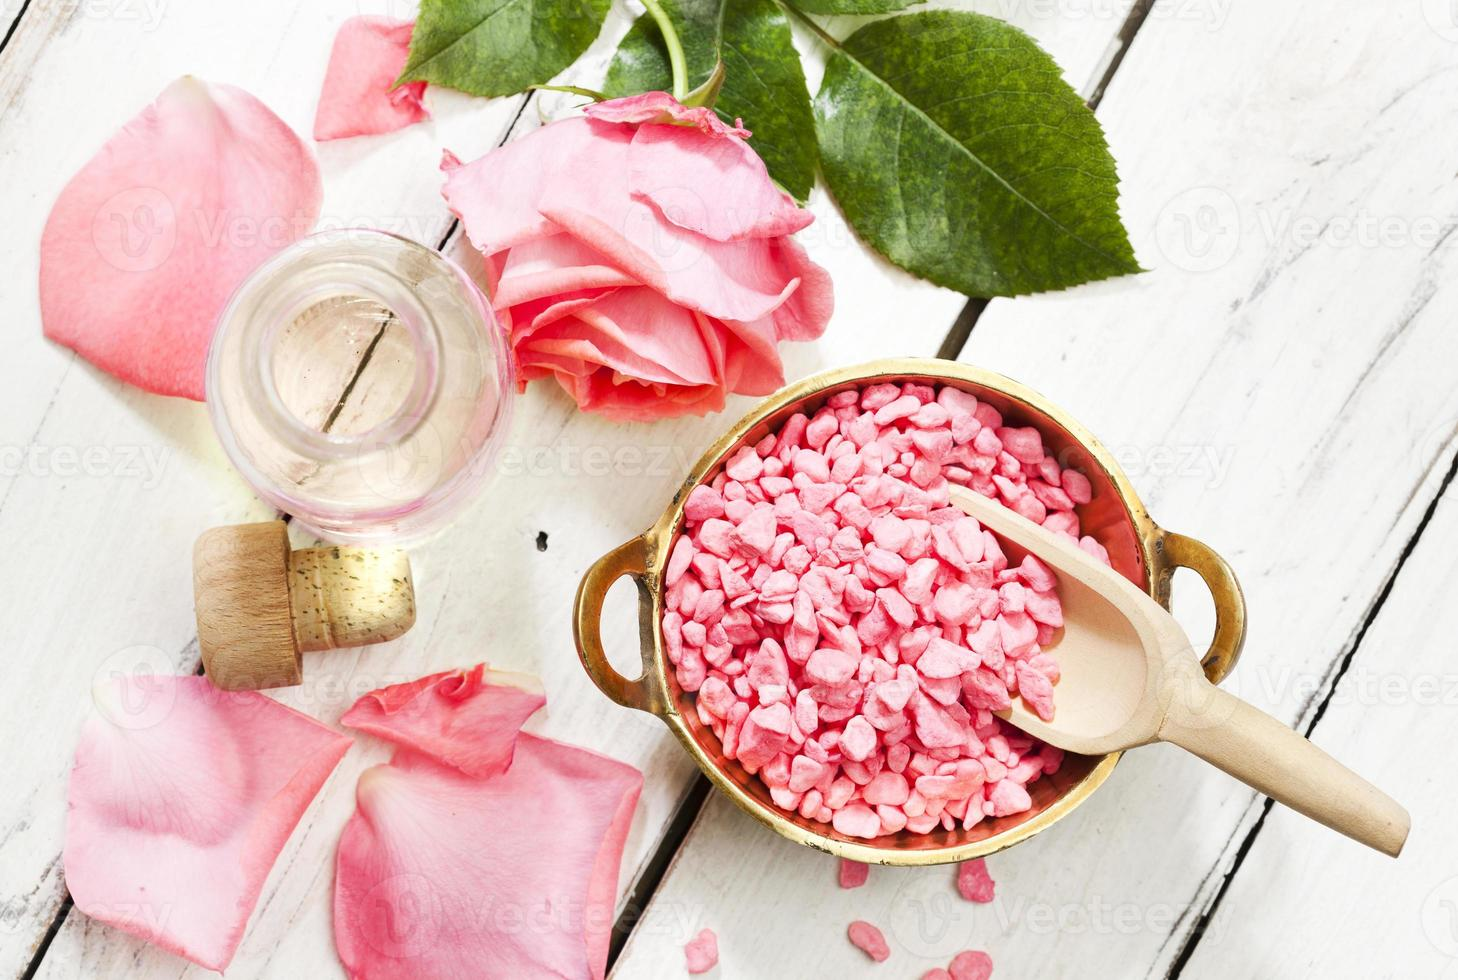 Rose aromatherapy products, top view photo